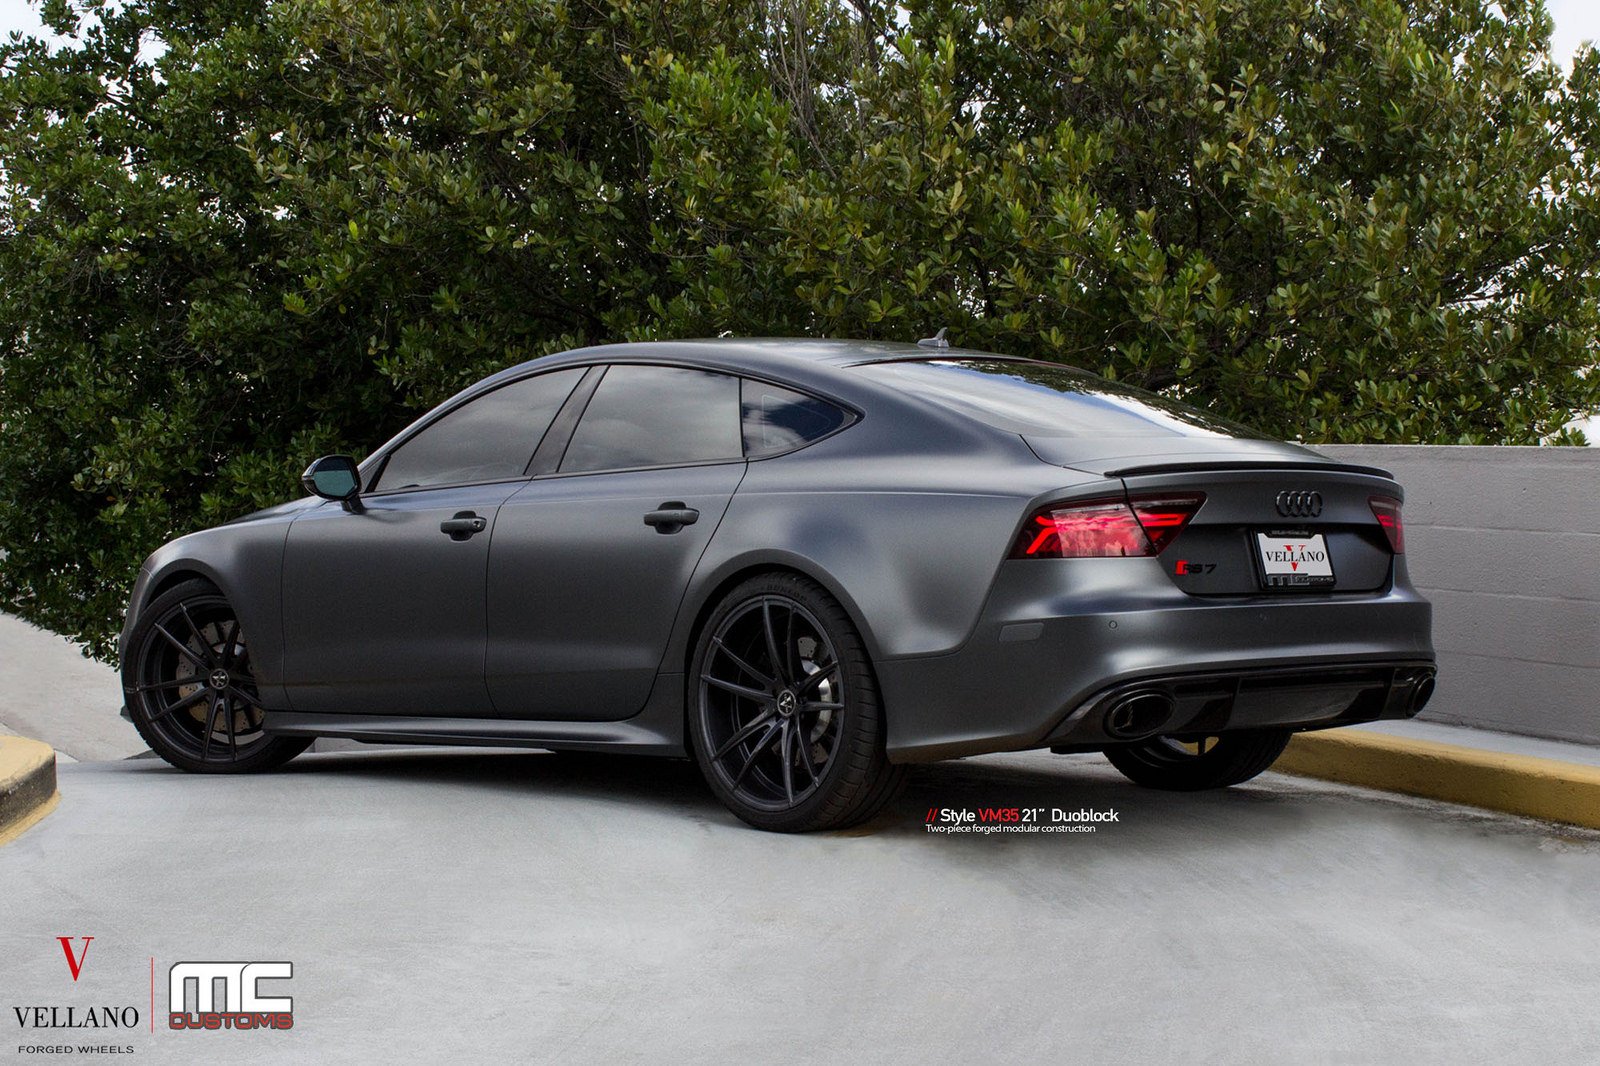 satin grey audi rs7 on vellano wheels is a supercar slayer carscoops. Black Bedroom Furniture Sets. Home Design Ideas